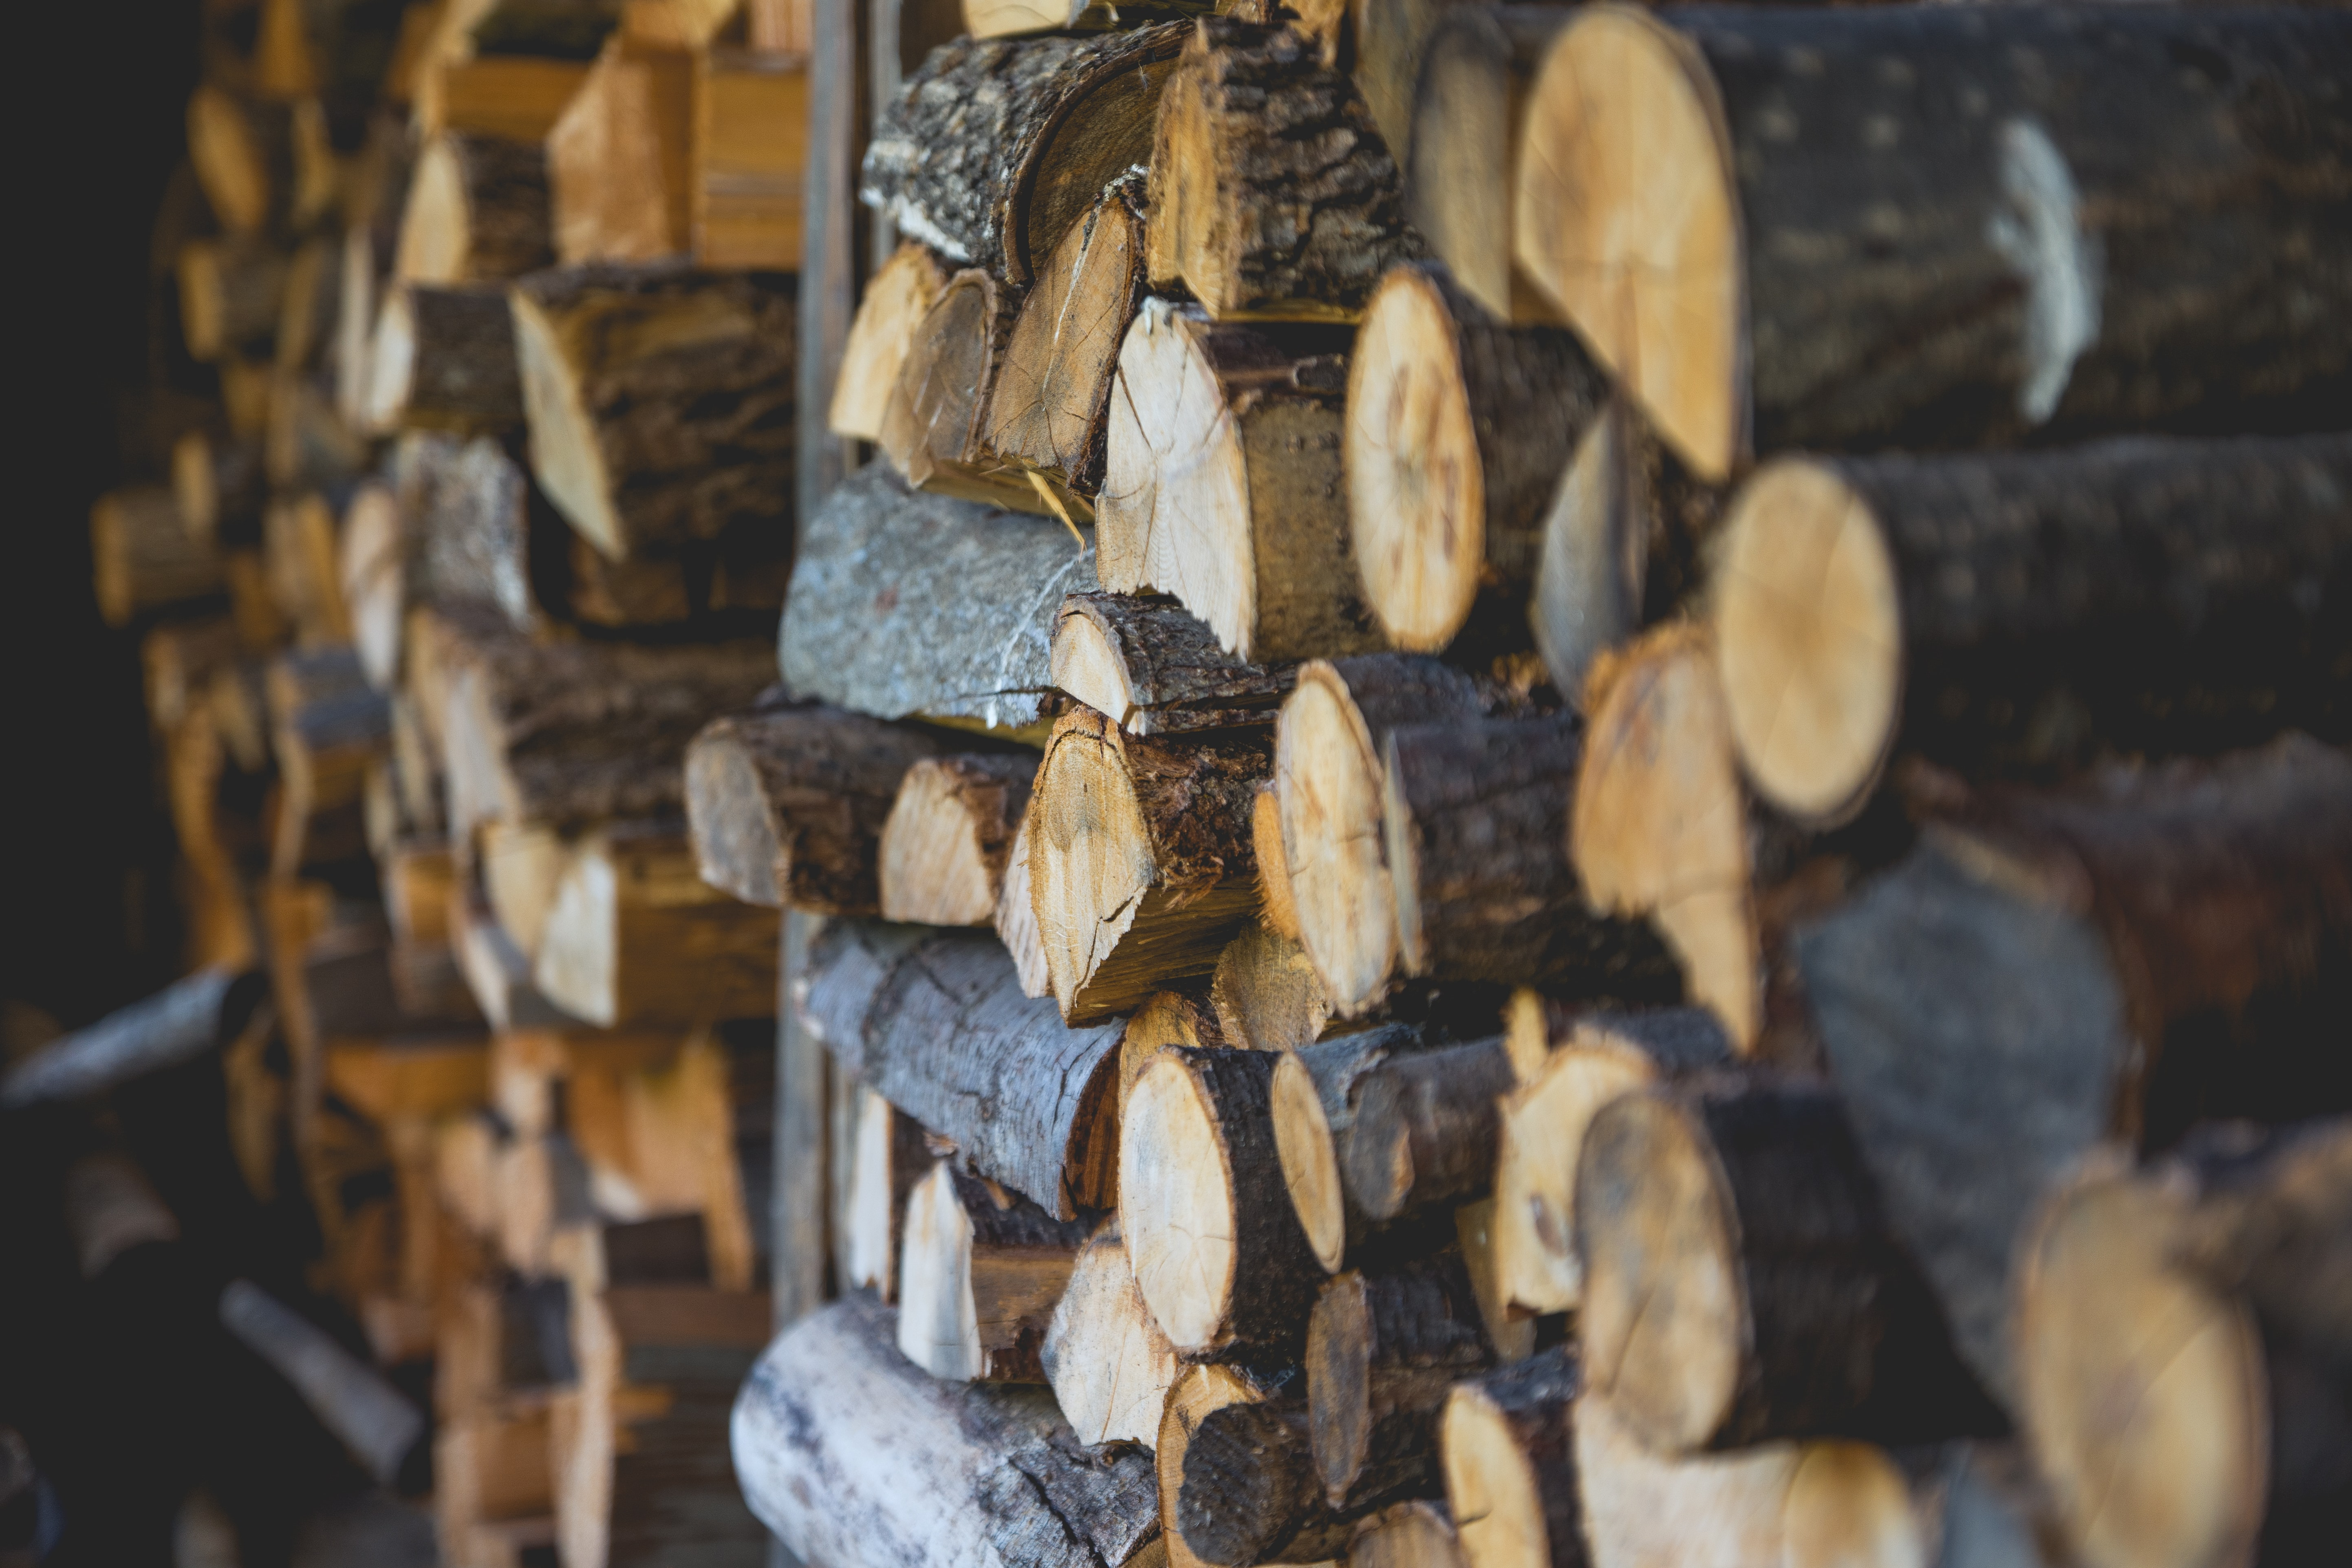 Stacks of firewood near a wall